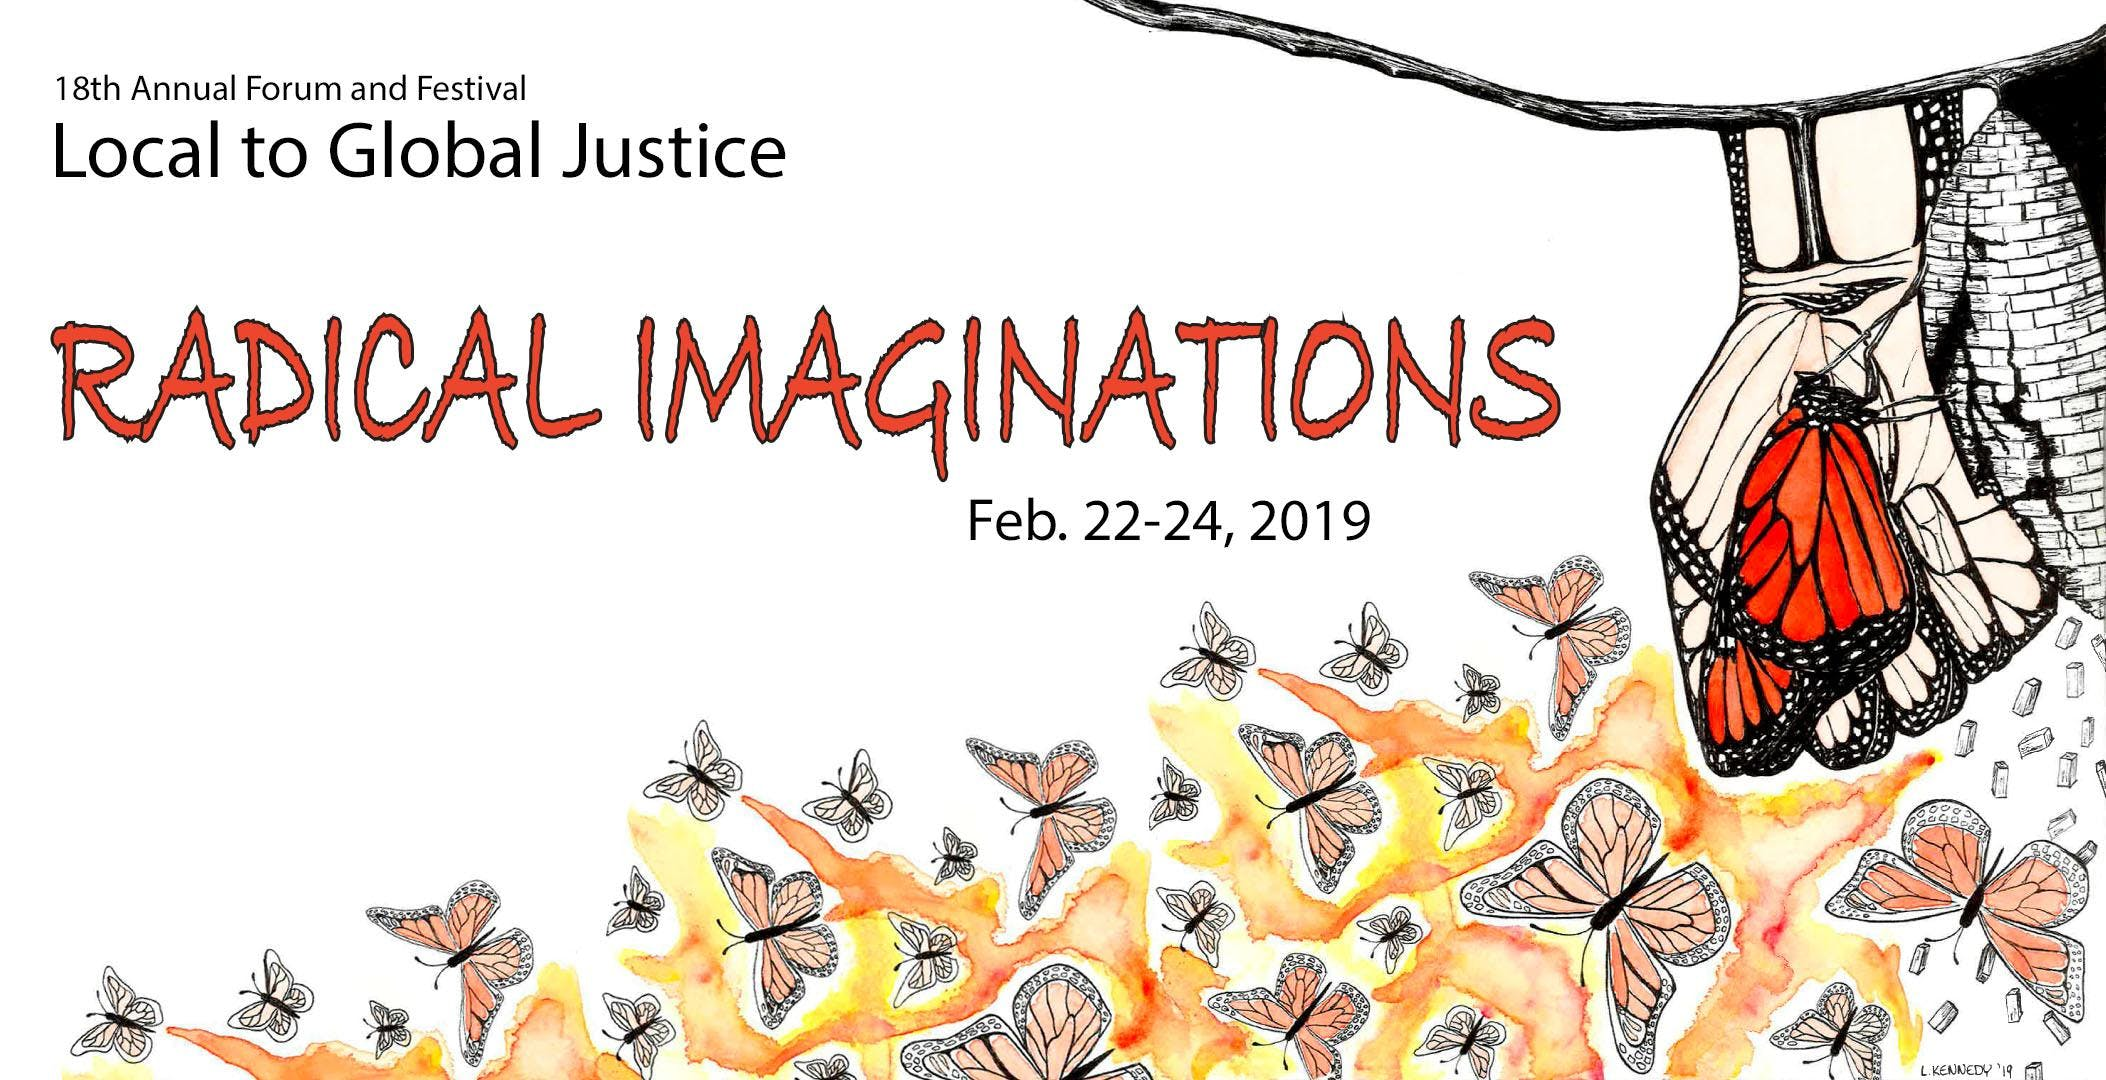 Local to Global Justice 2019: Radical Imaginations (2/22-2/24/19)